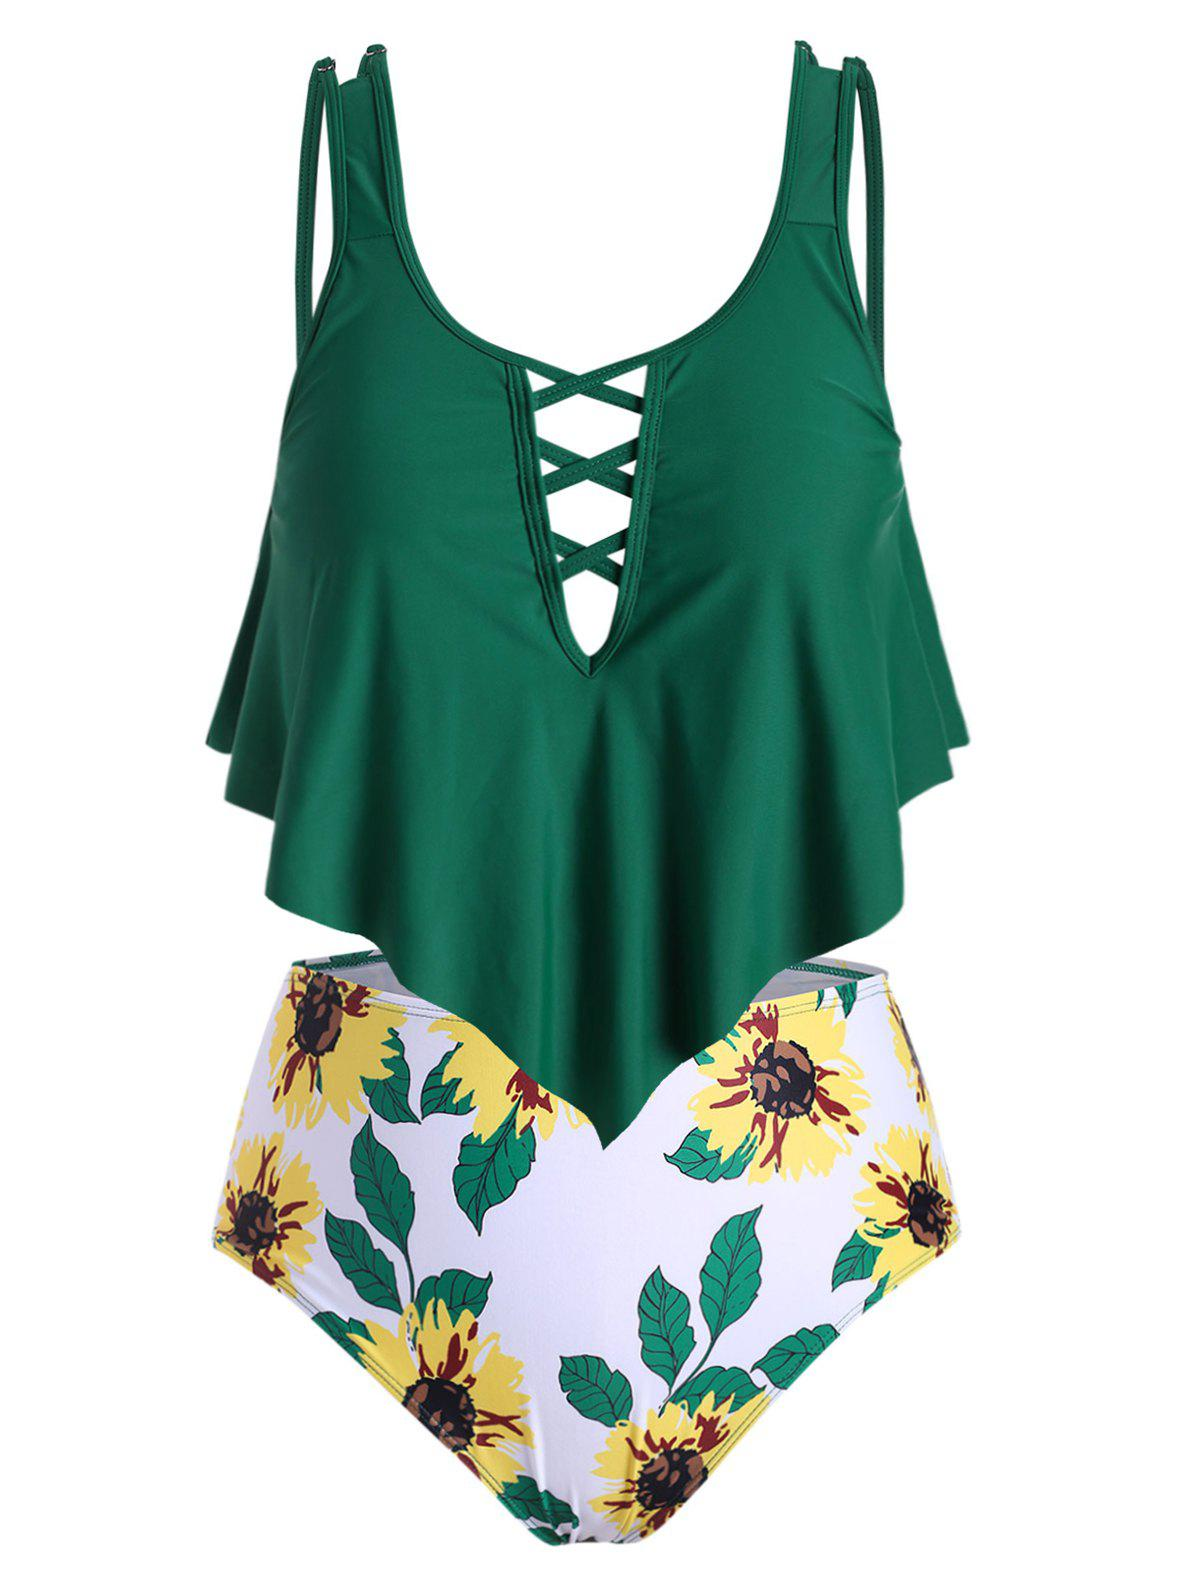 Plus Size Crisscross Overlay Sunflower Print Tankini Swimsuit - DEEP GREEN 5X